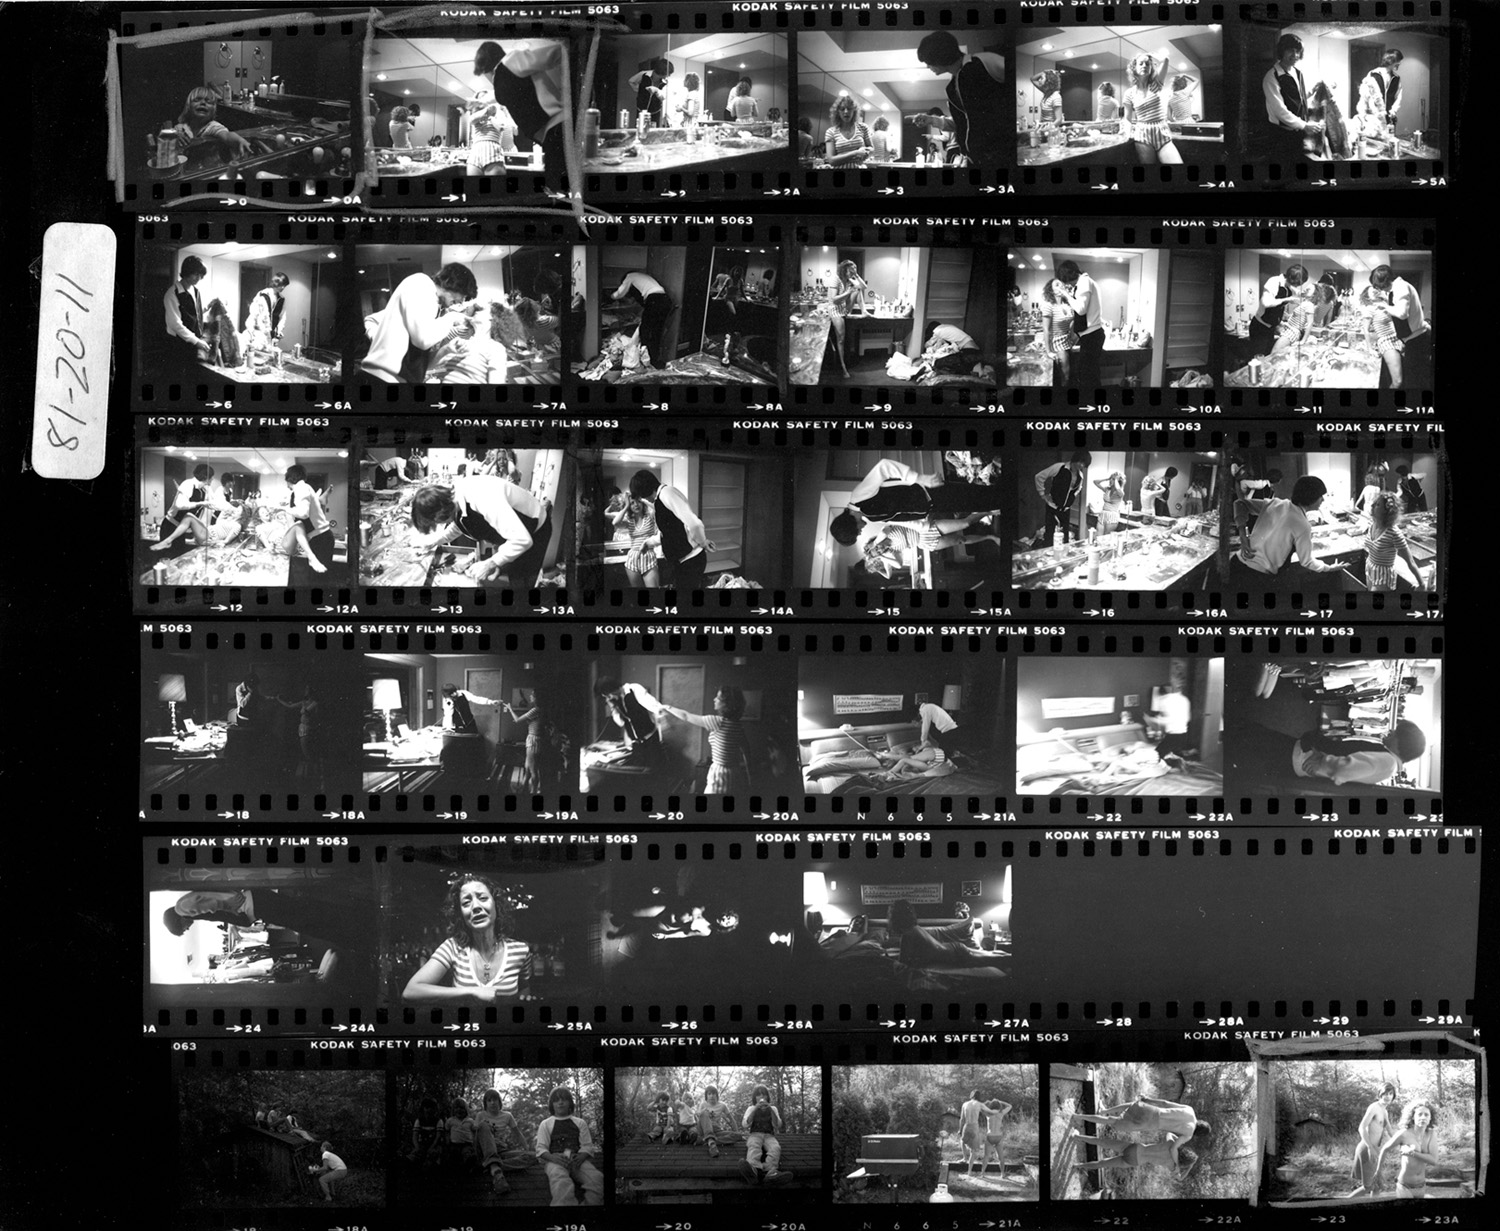 The contact sheet shows every frame of the first fight I witnessed between Garth and Lisa. The most important thing on my mind was to take pictures to prove that what I was seeing really happened. Without a photograph there would be no evidence.